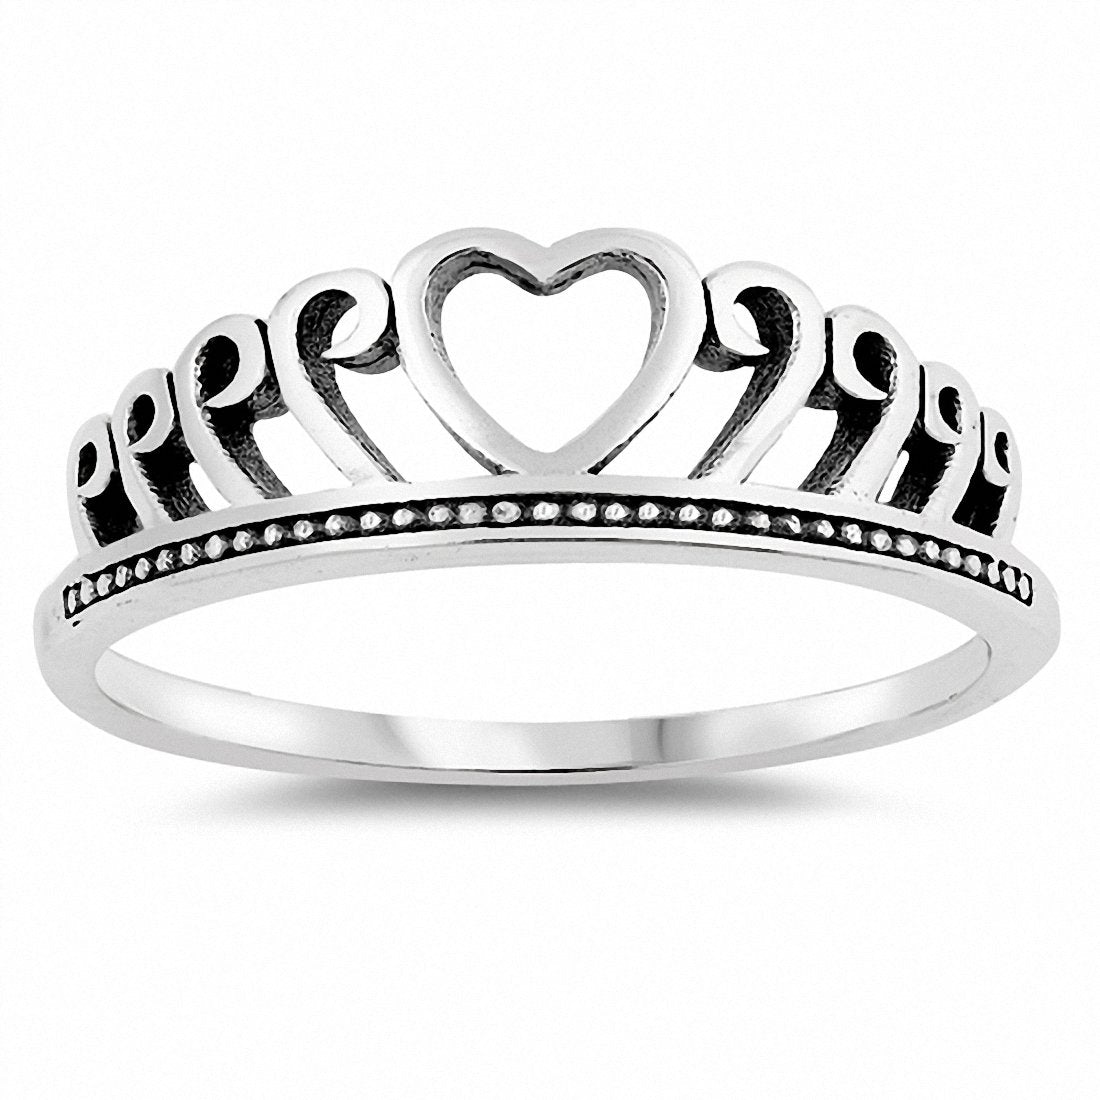 Plain Heart Ring Band 925 Sterling Silver Choose Color